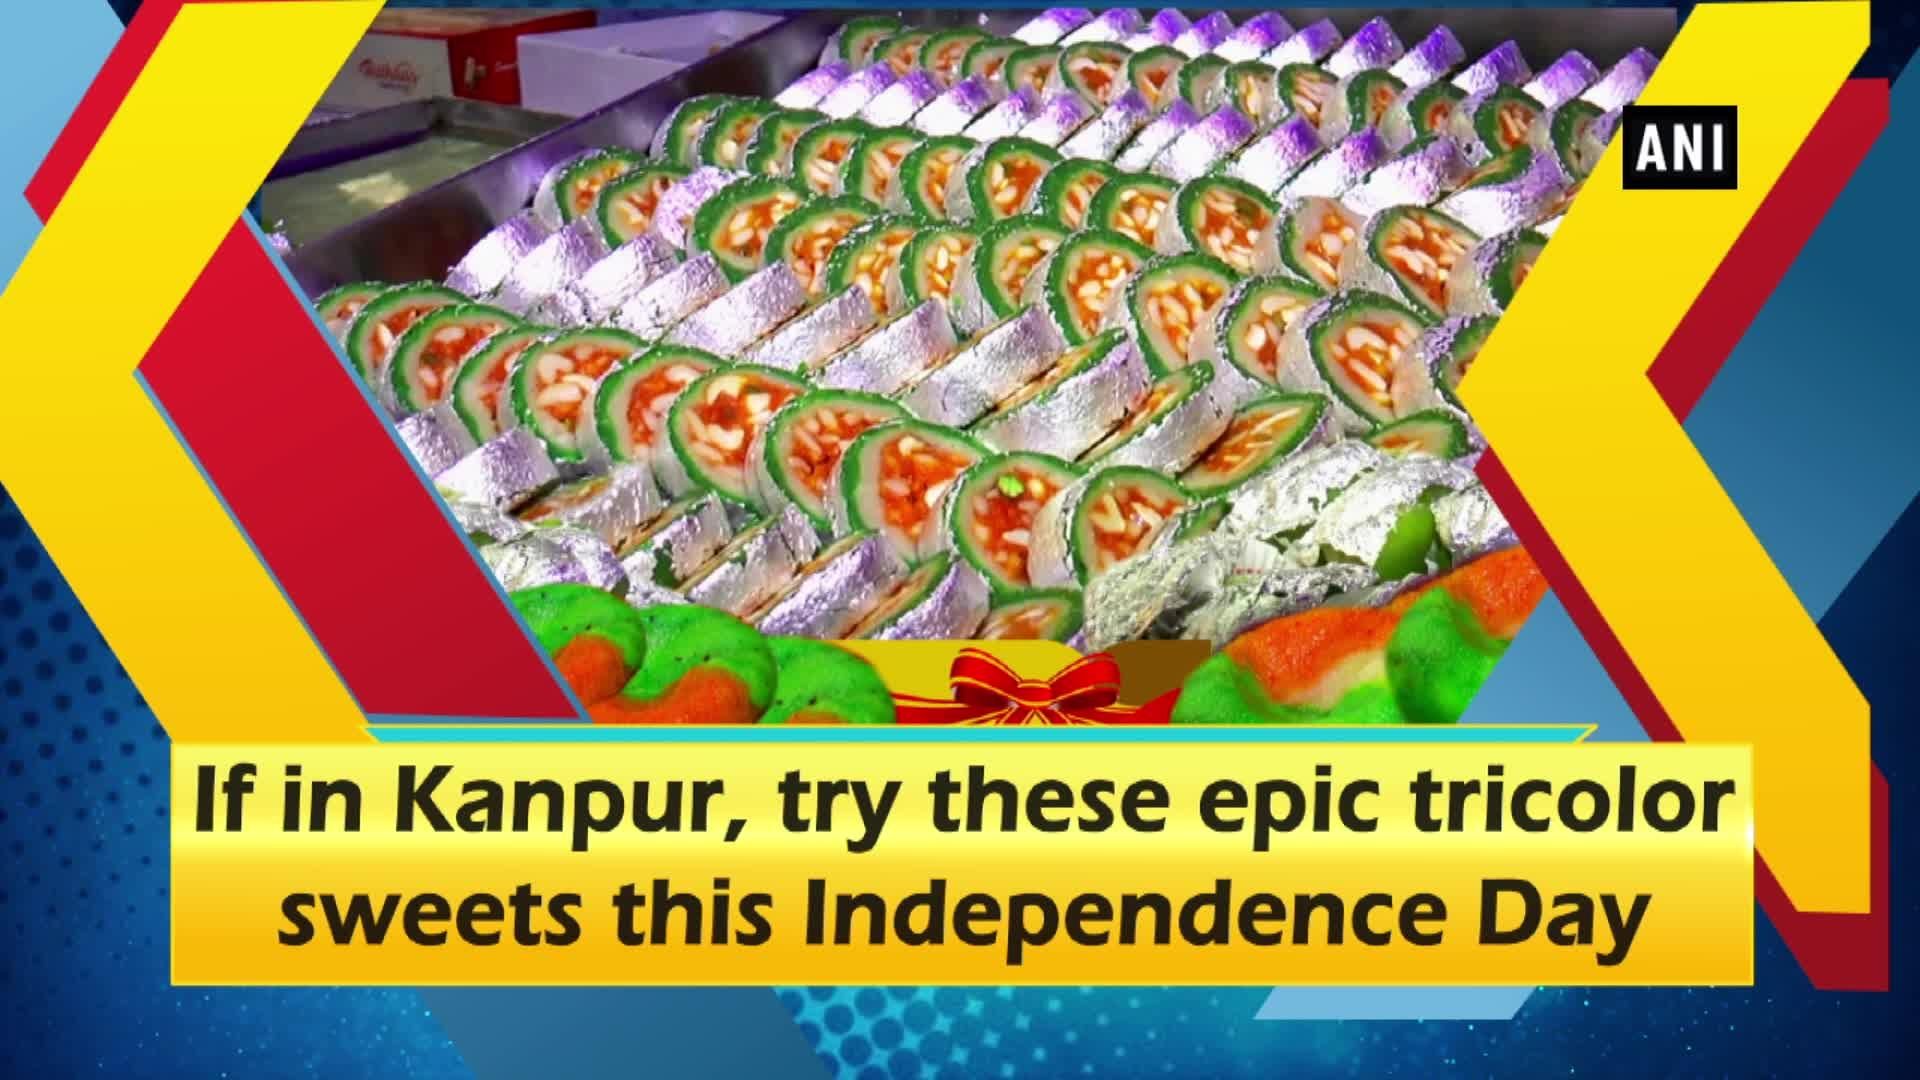 If in Kanpur, try these epic tricolor sweets this Independence Day - Yahoo India News